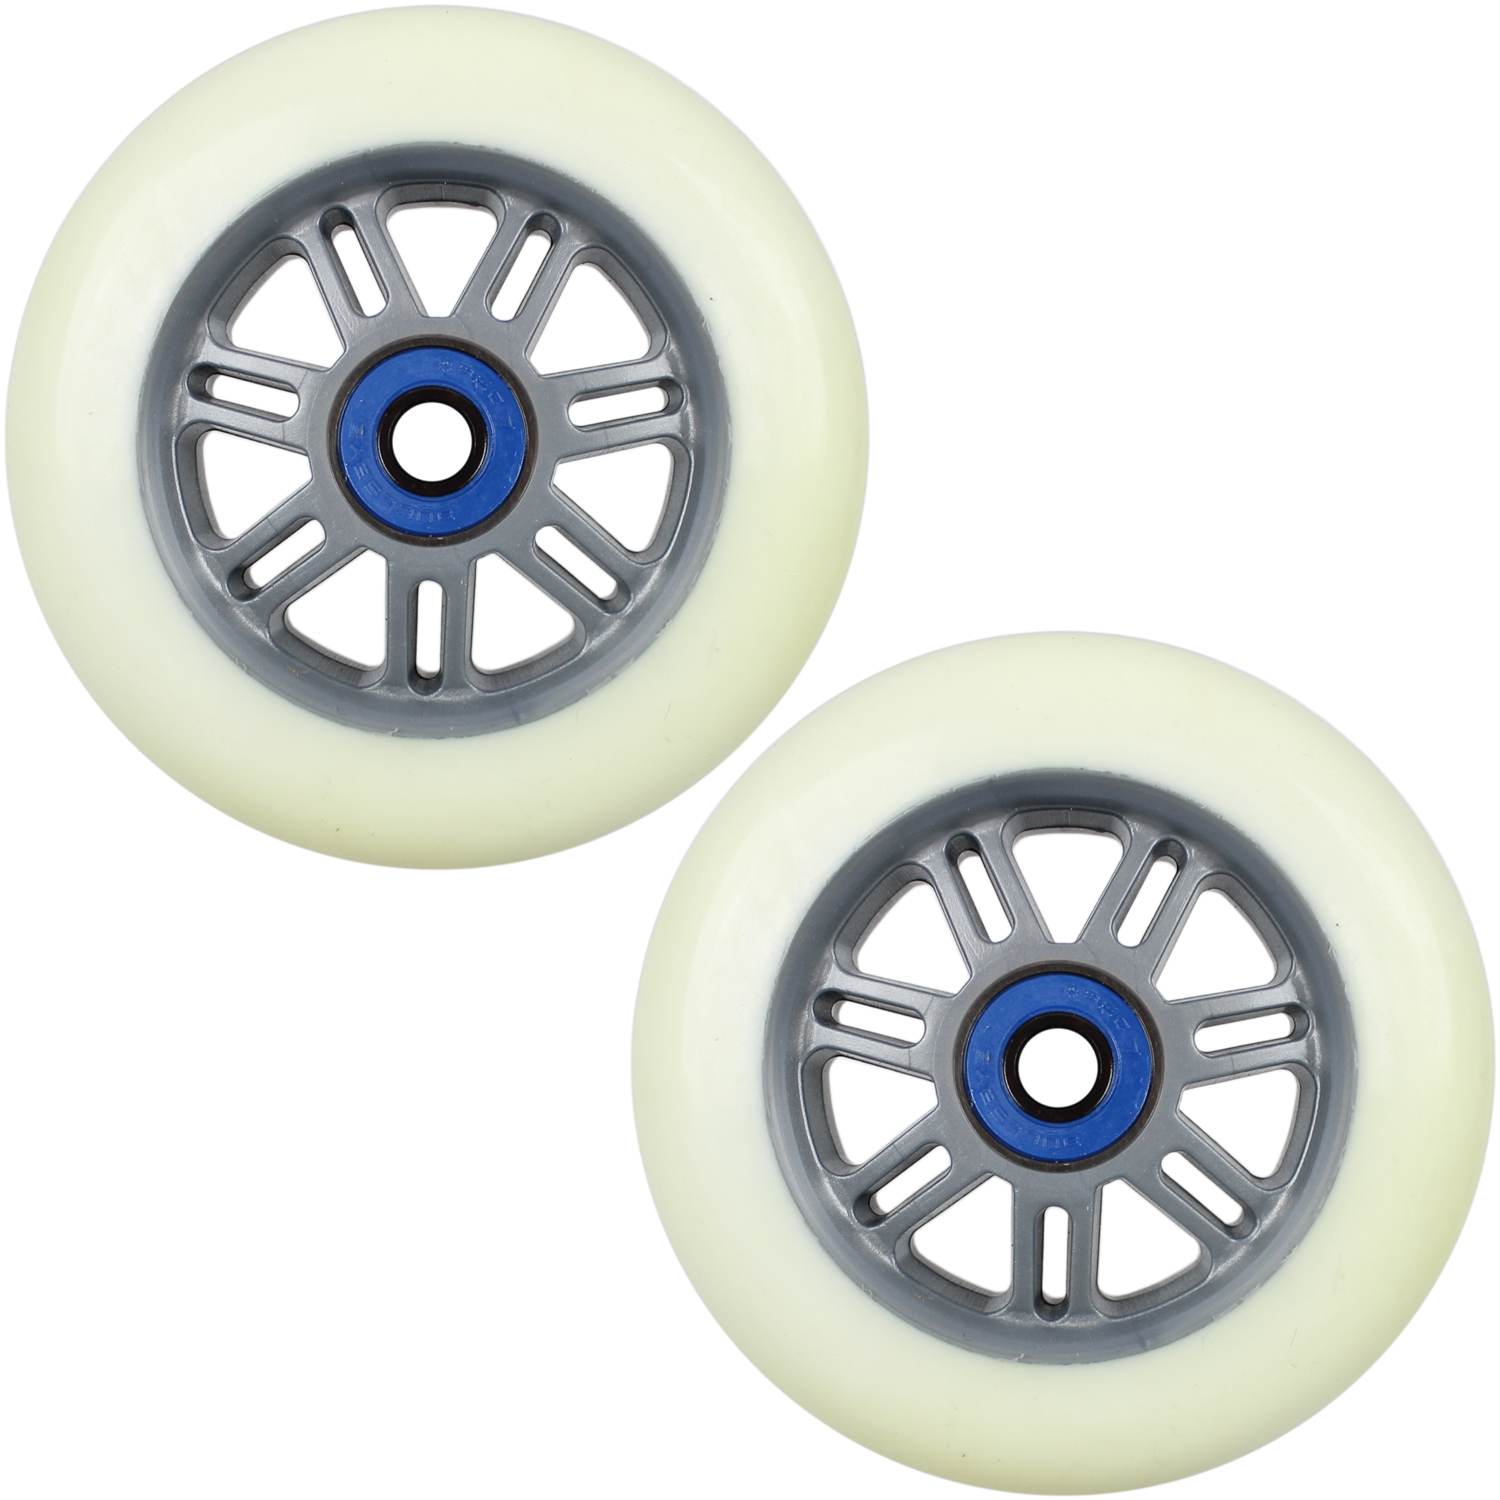 Details about Scooter Wheels 2 Pack Grey White 100mm with Abec 7